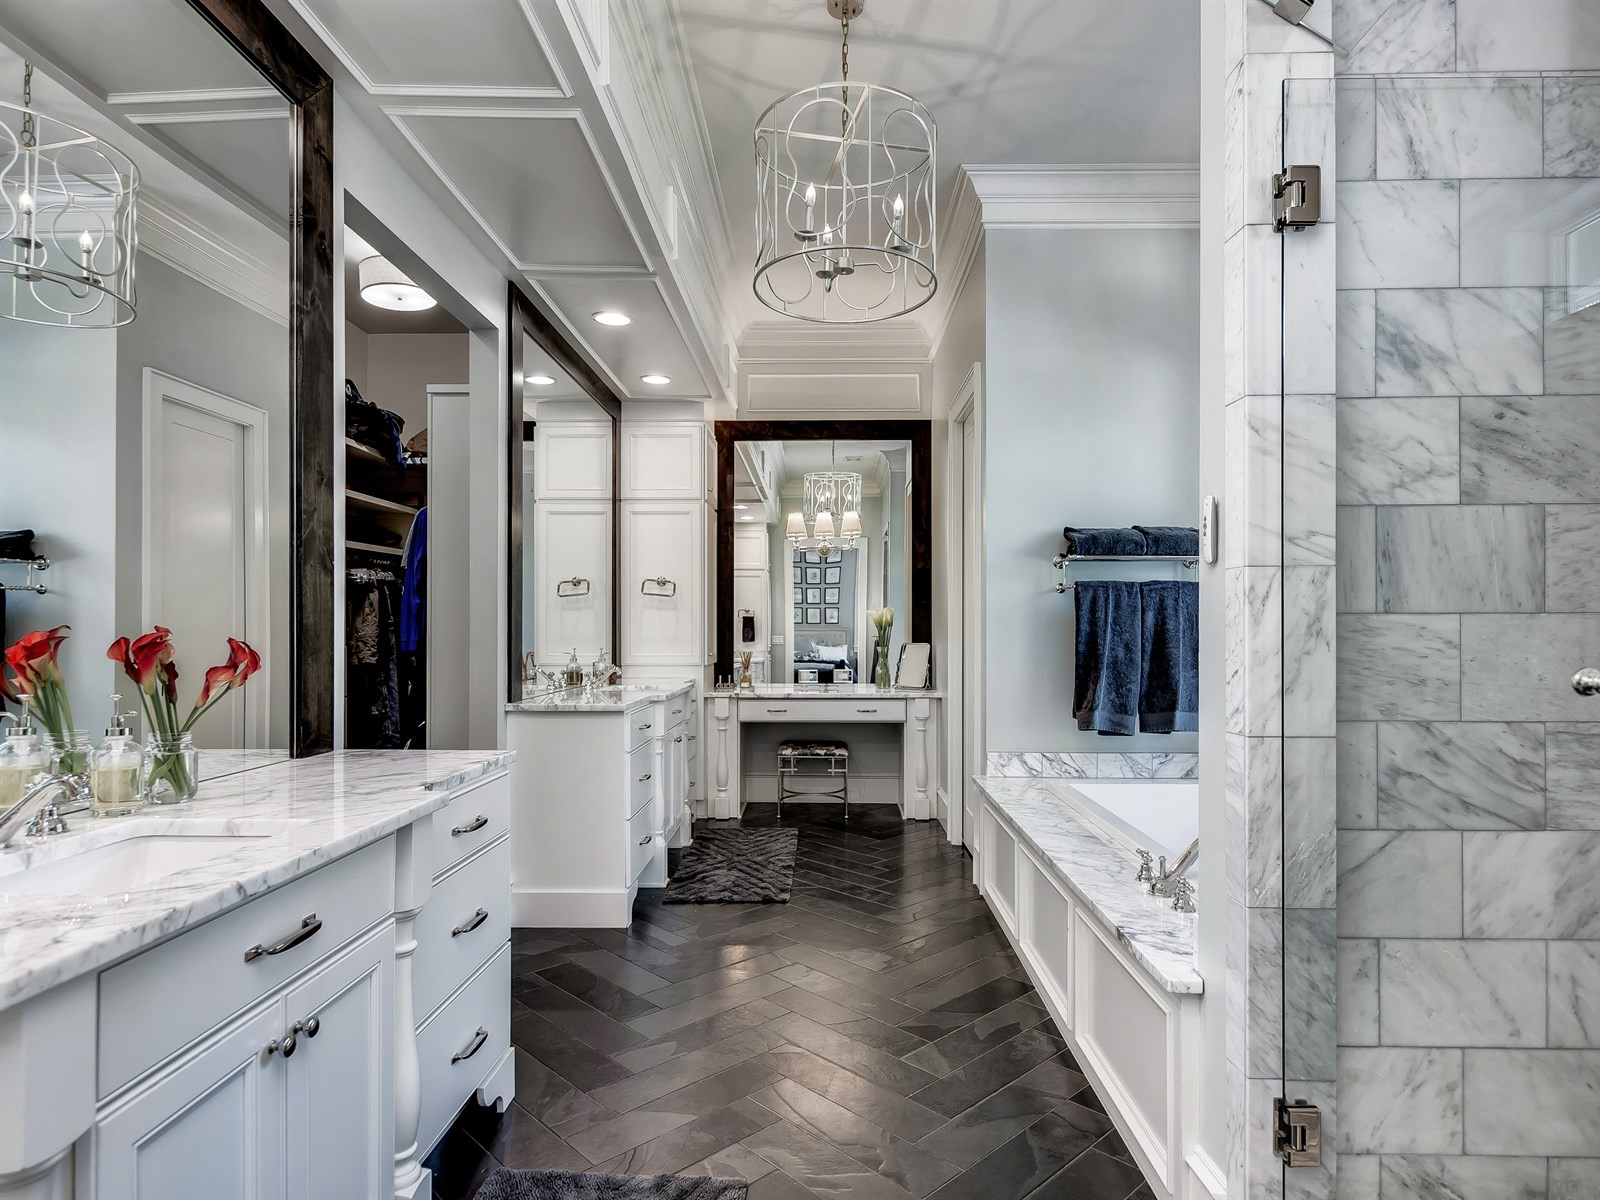 044_Master Bathroom .jpg